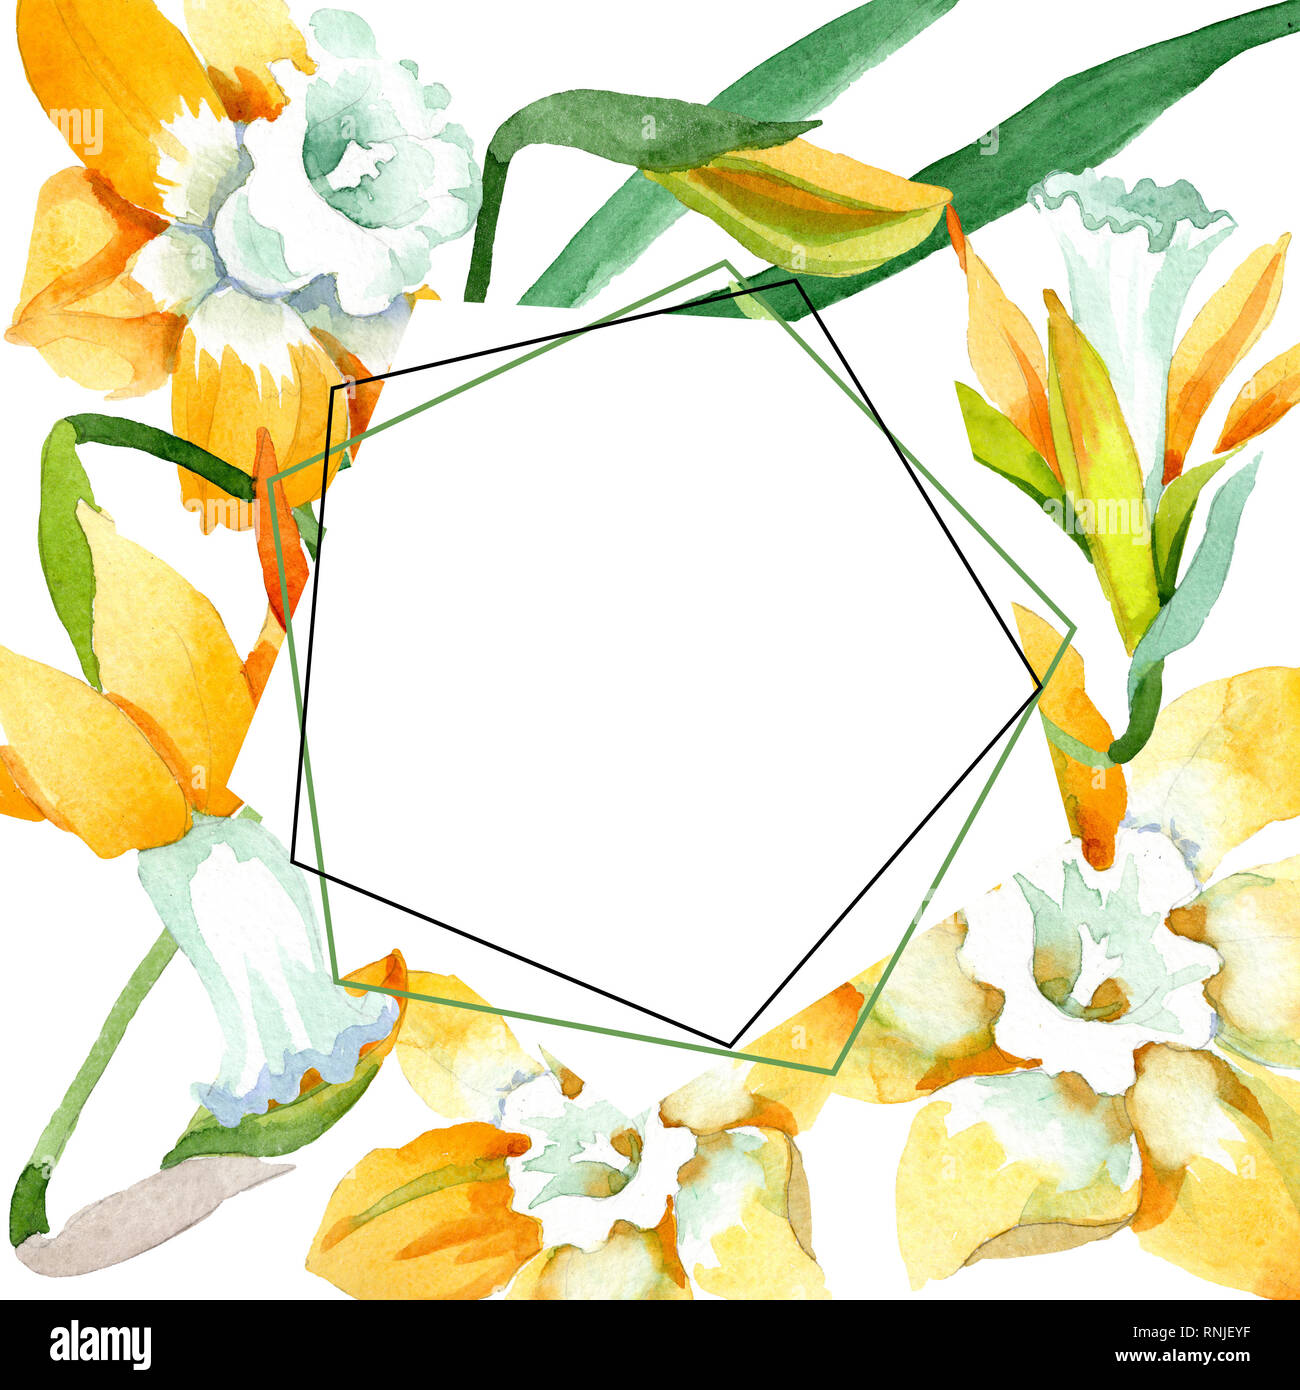 yellow narcissus floral botanical flower watercolor background illustration set frame border ornament square stock photo alamy https www alamy com yellow narcissus floral botanical flower watercolor background illustration set frame border ornament square image237049443 html